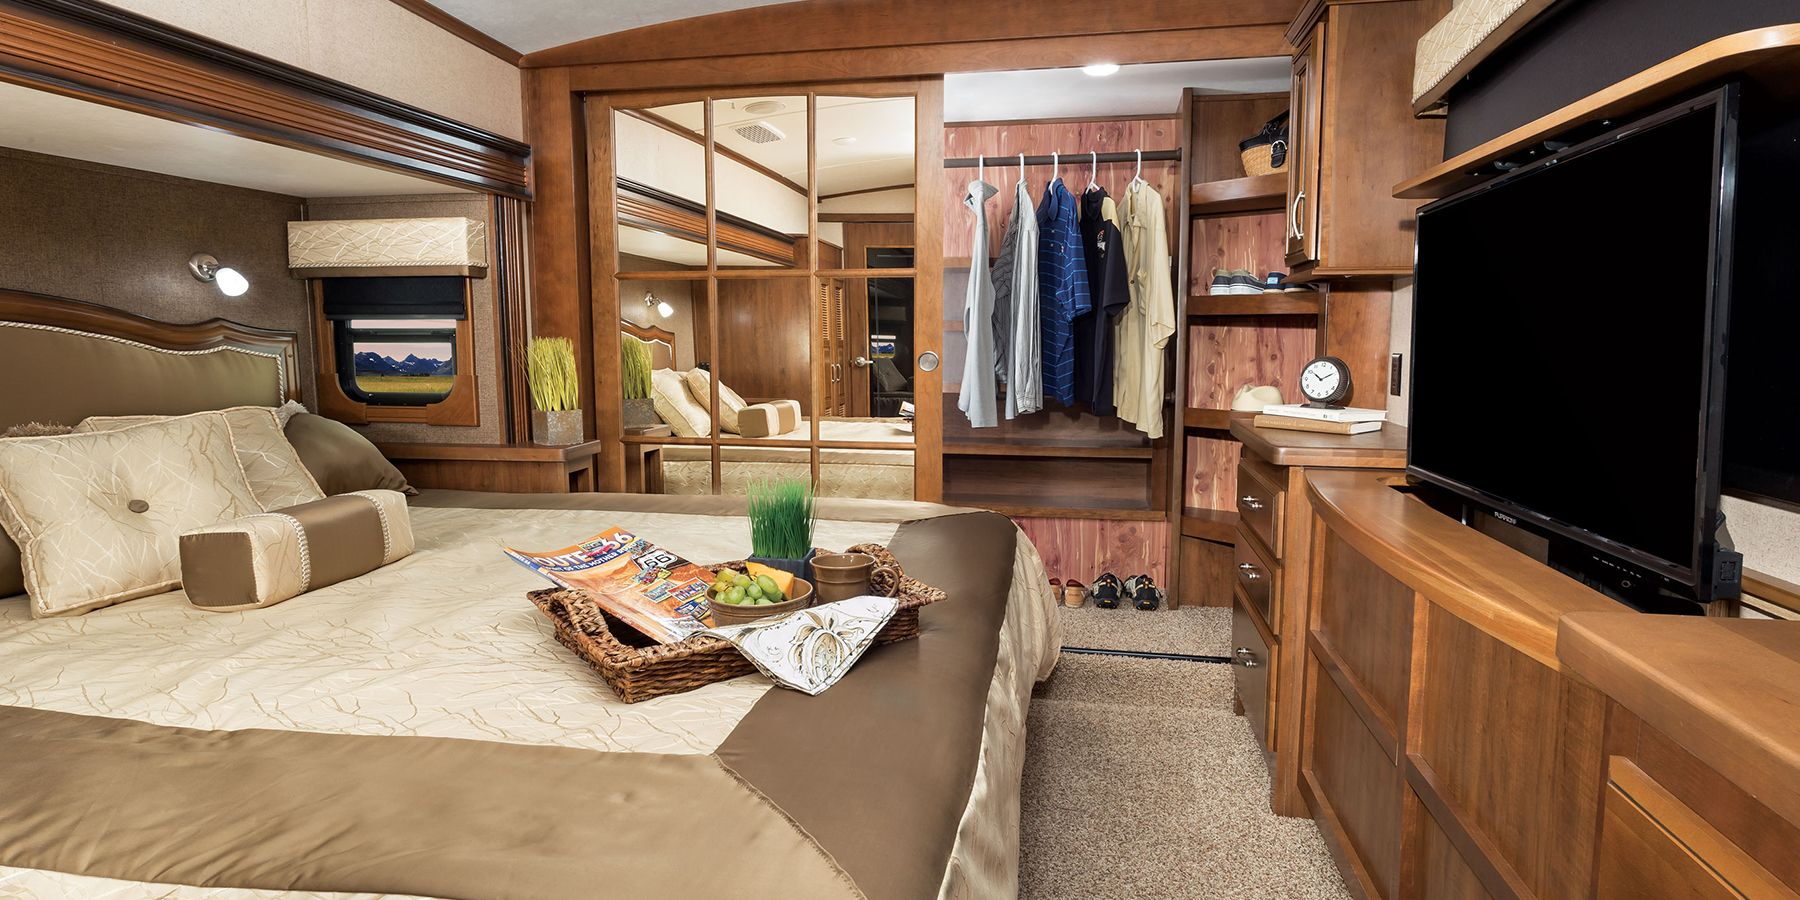 2 Bedroom 5Th Wheel Campers For Sale